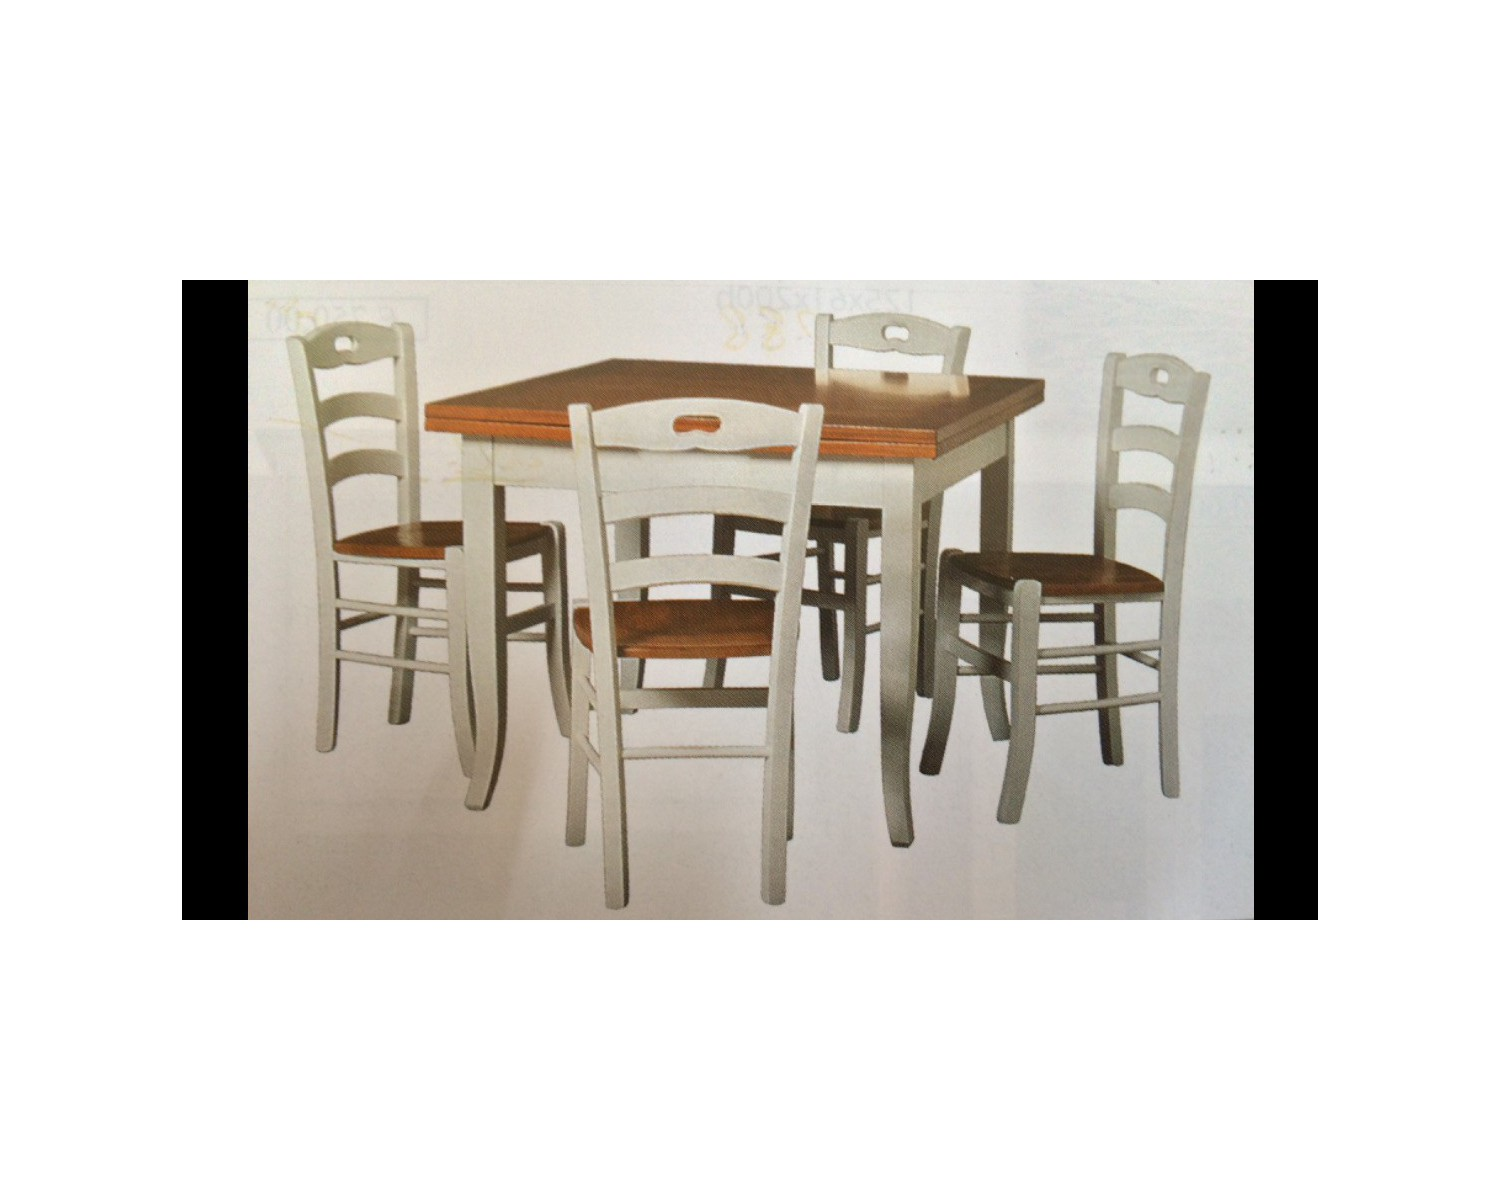 Table 4 chairs and wood 160x85 bicolor bicolor italian country for Cie no 85 table 4